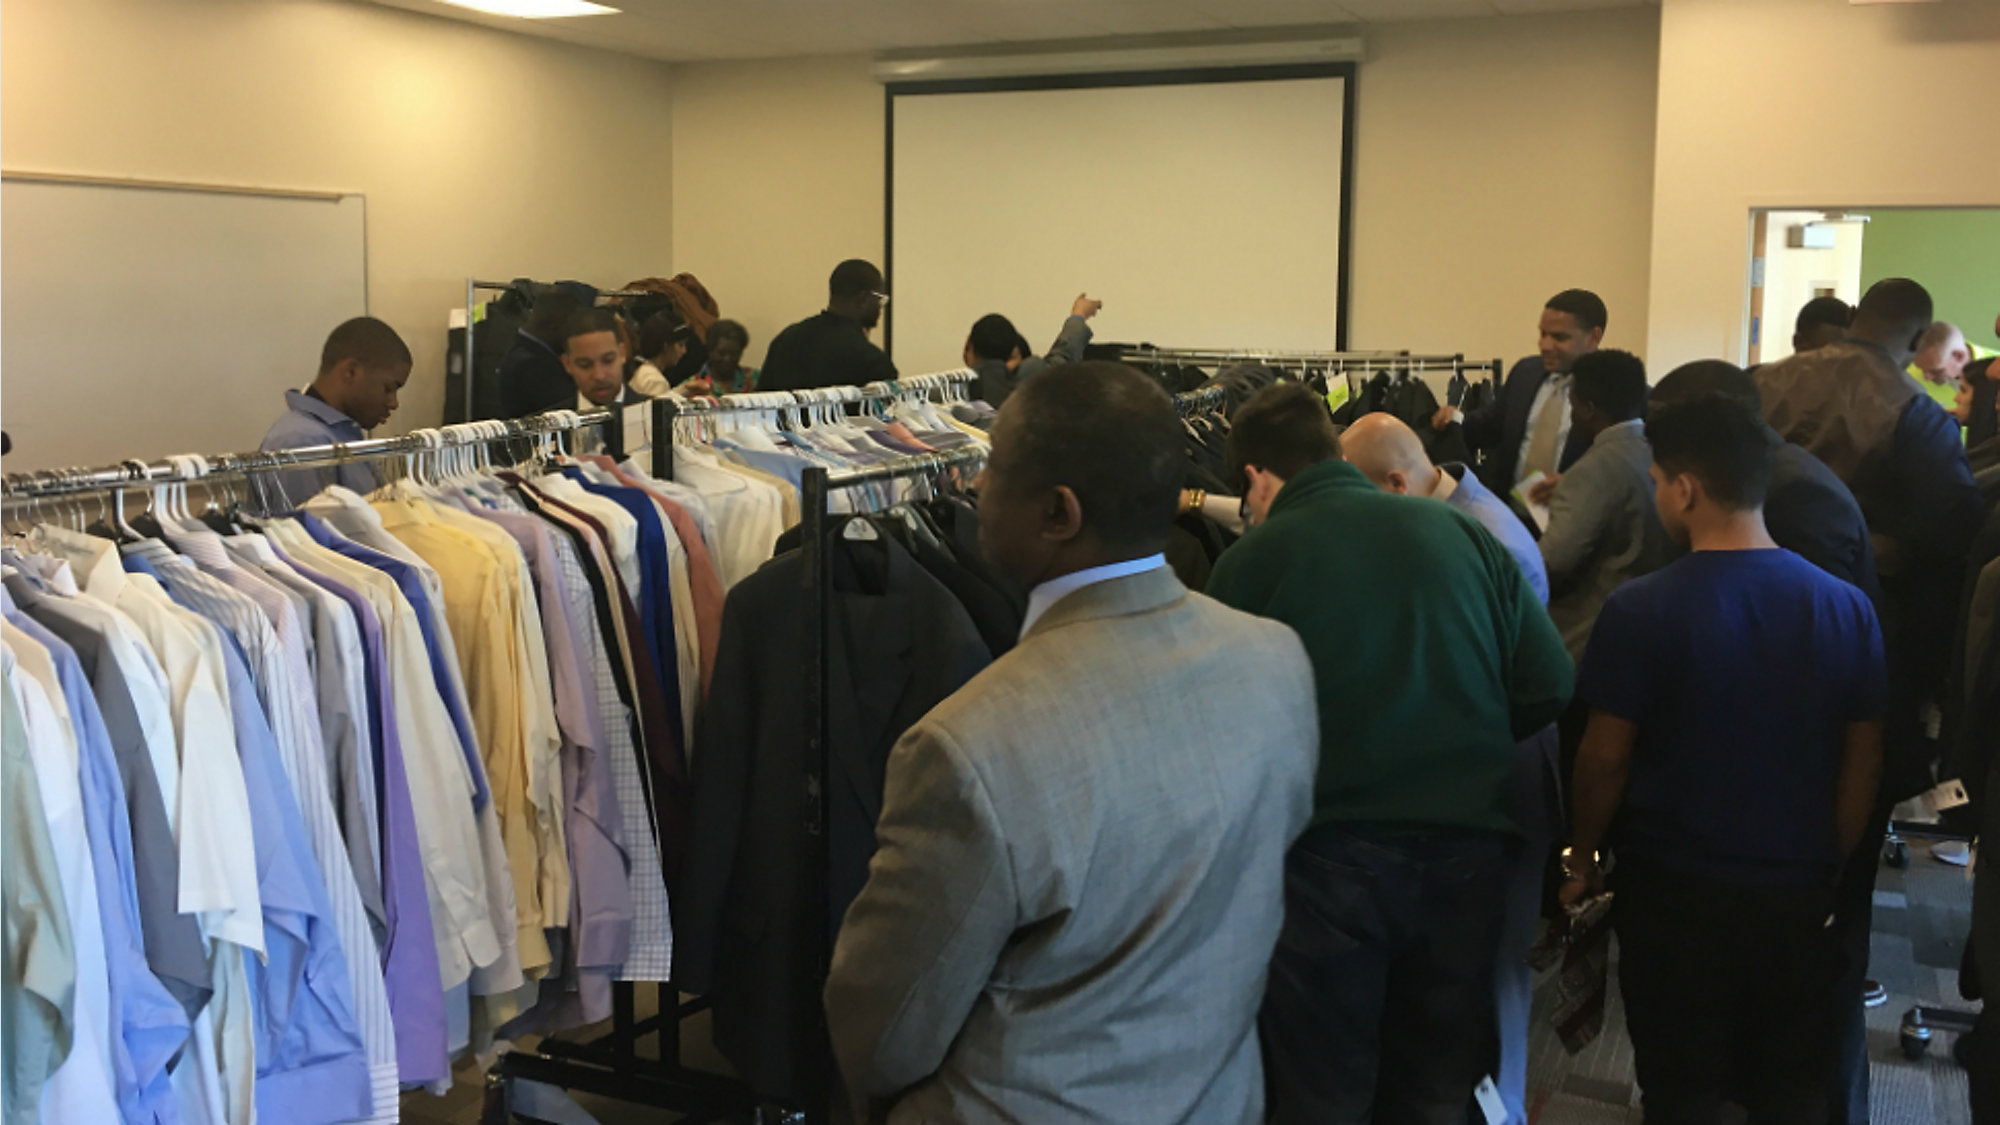 Suit Up and Show Up: Program Preps Young Men for Life